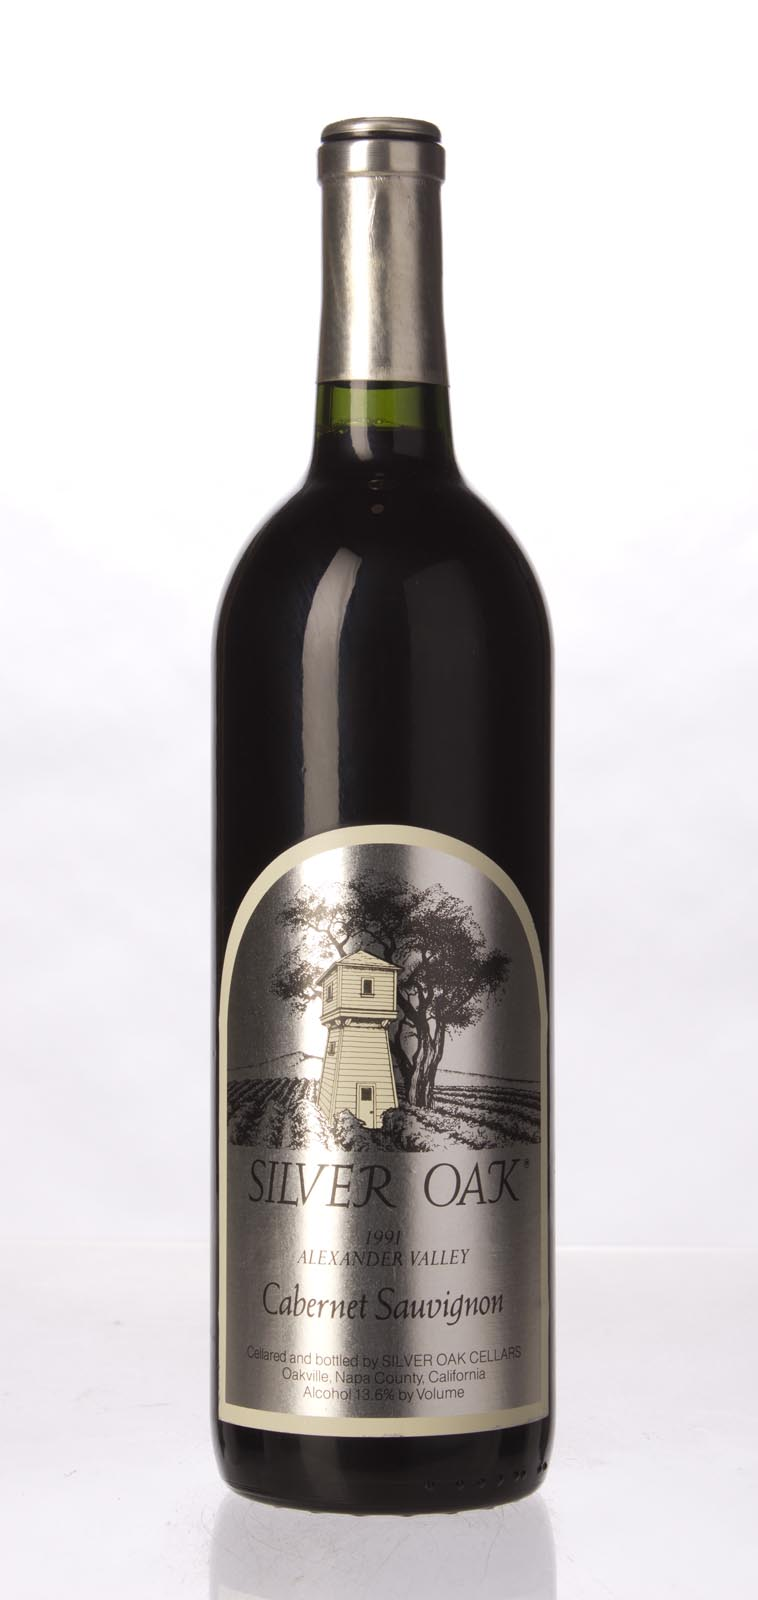 Silver Oak Cabernet Sauvignon Alexander Valley 1991, 750mL (WA92, WS91) from The BPW - Merchants of rare and fine wines.